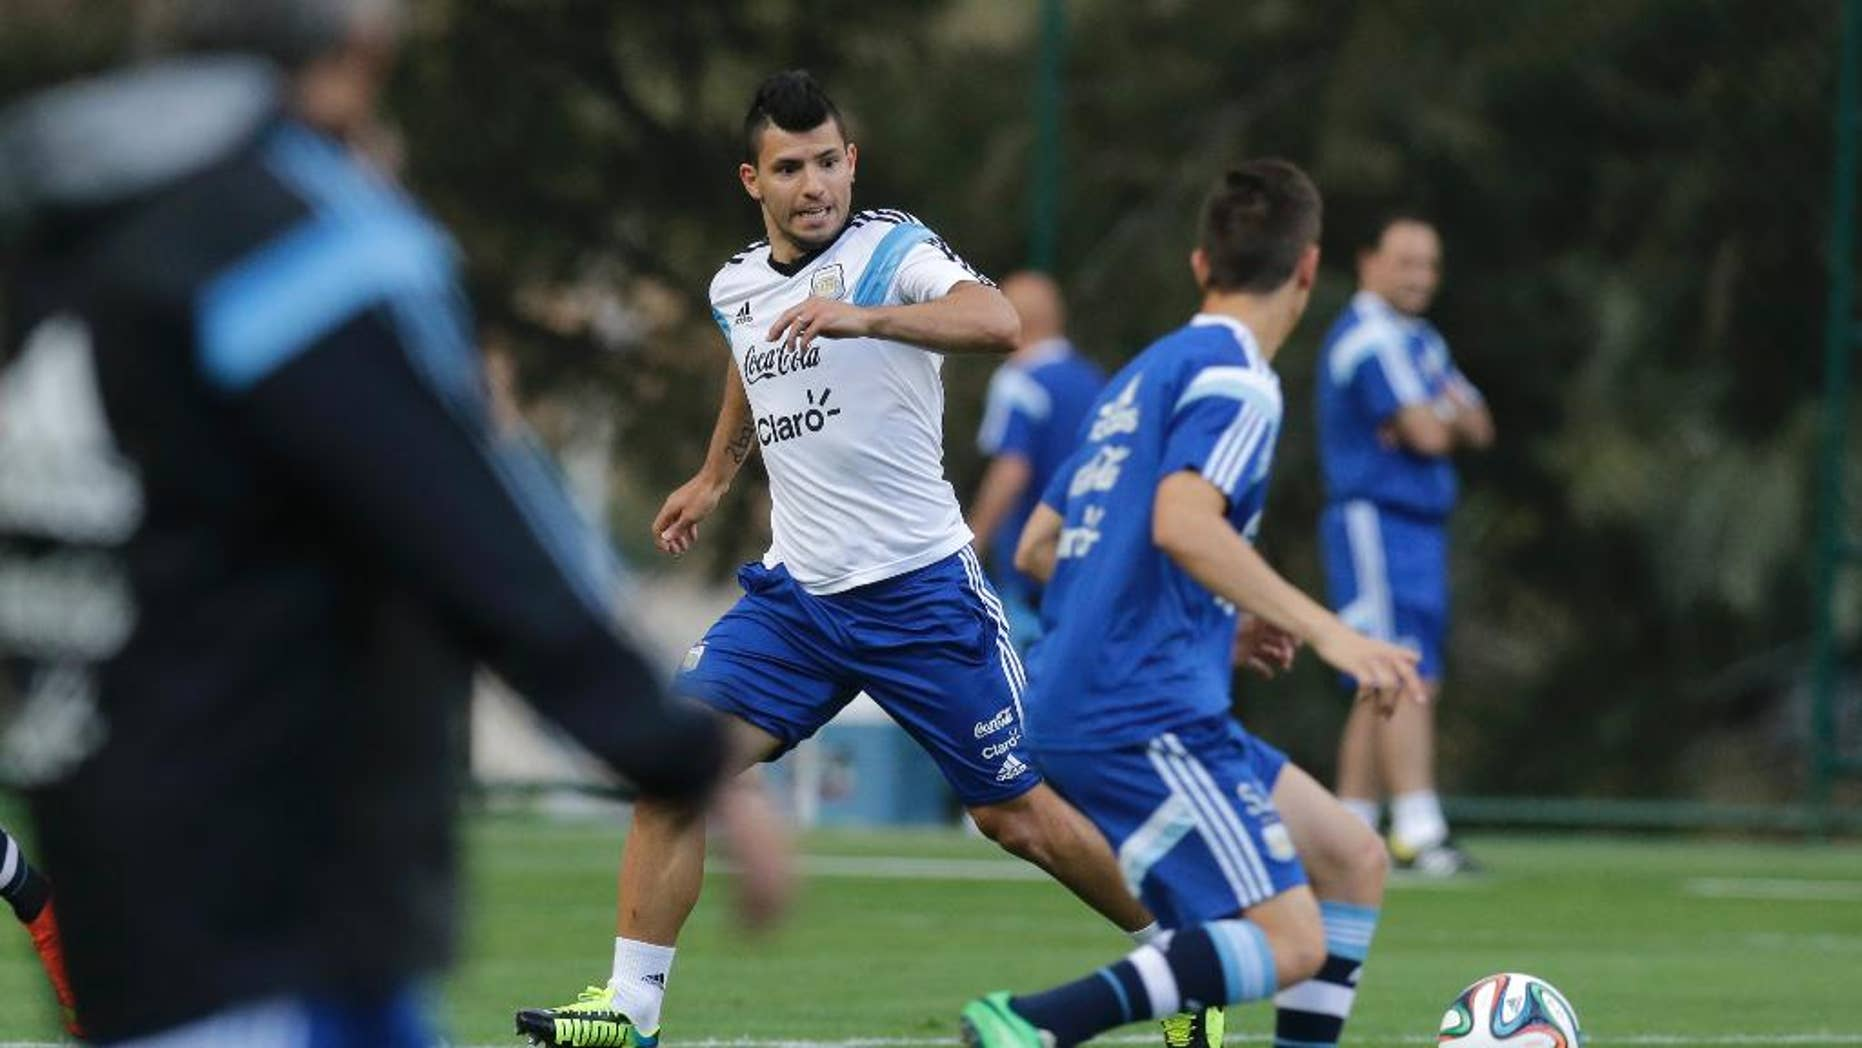 Argentina's Sergio Aguero, center, runs for the ball during a training session in Vespesiano, near Belo Horizonte, Brazil, Thursday, July 10, 2014. On Sunday, Argentina faces Germany for the World Cup final soccer match in Rio de Janeiro. (AP Photo/Victor R. Caivano)